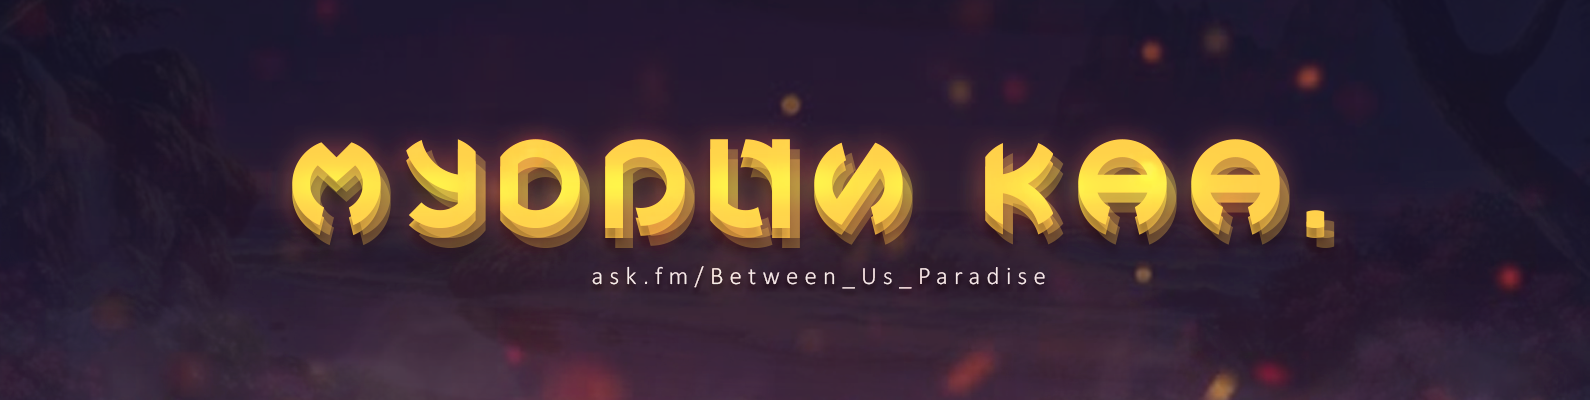 Between_Us_Paradise's Cover Photo